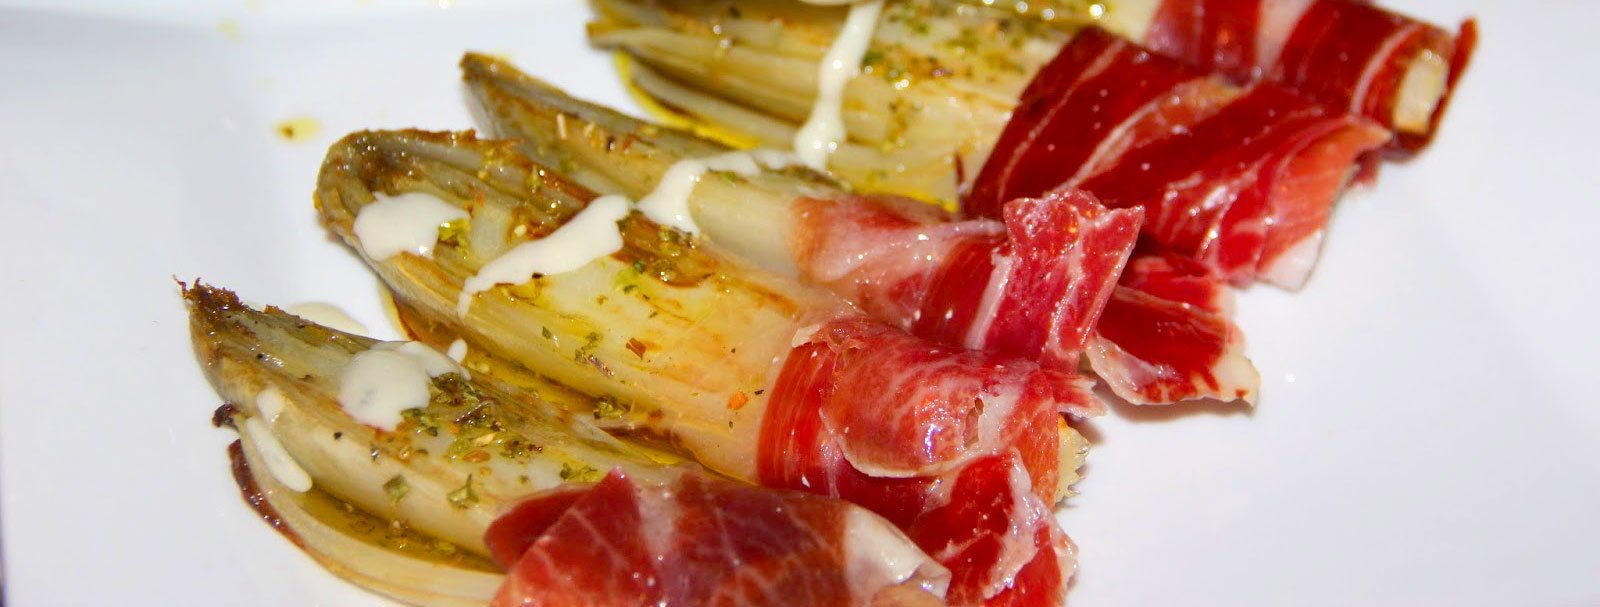 Endives with Iberian ham and cream cheese